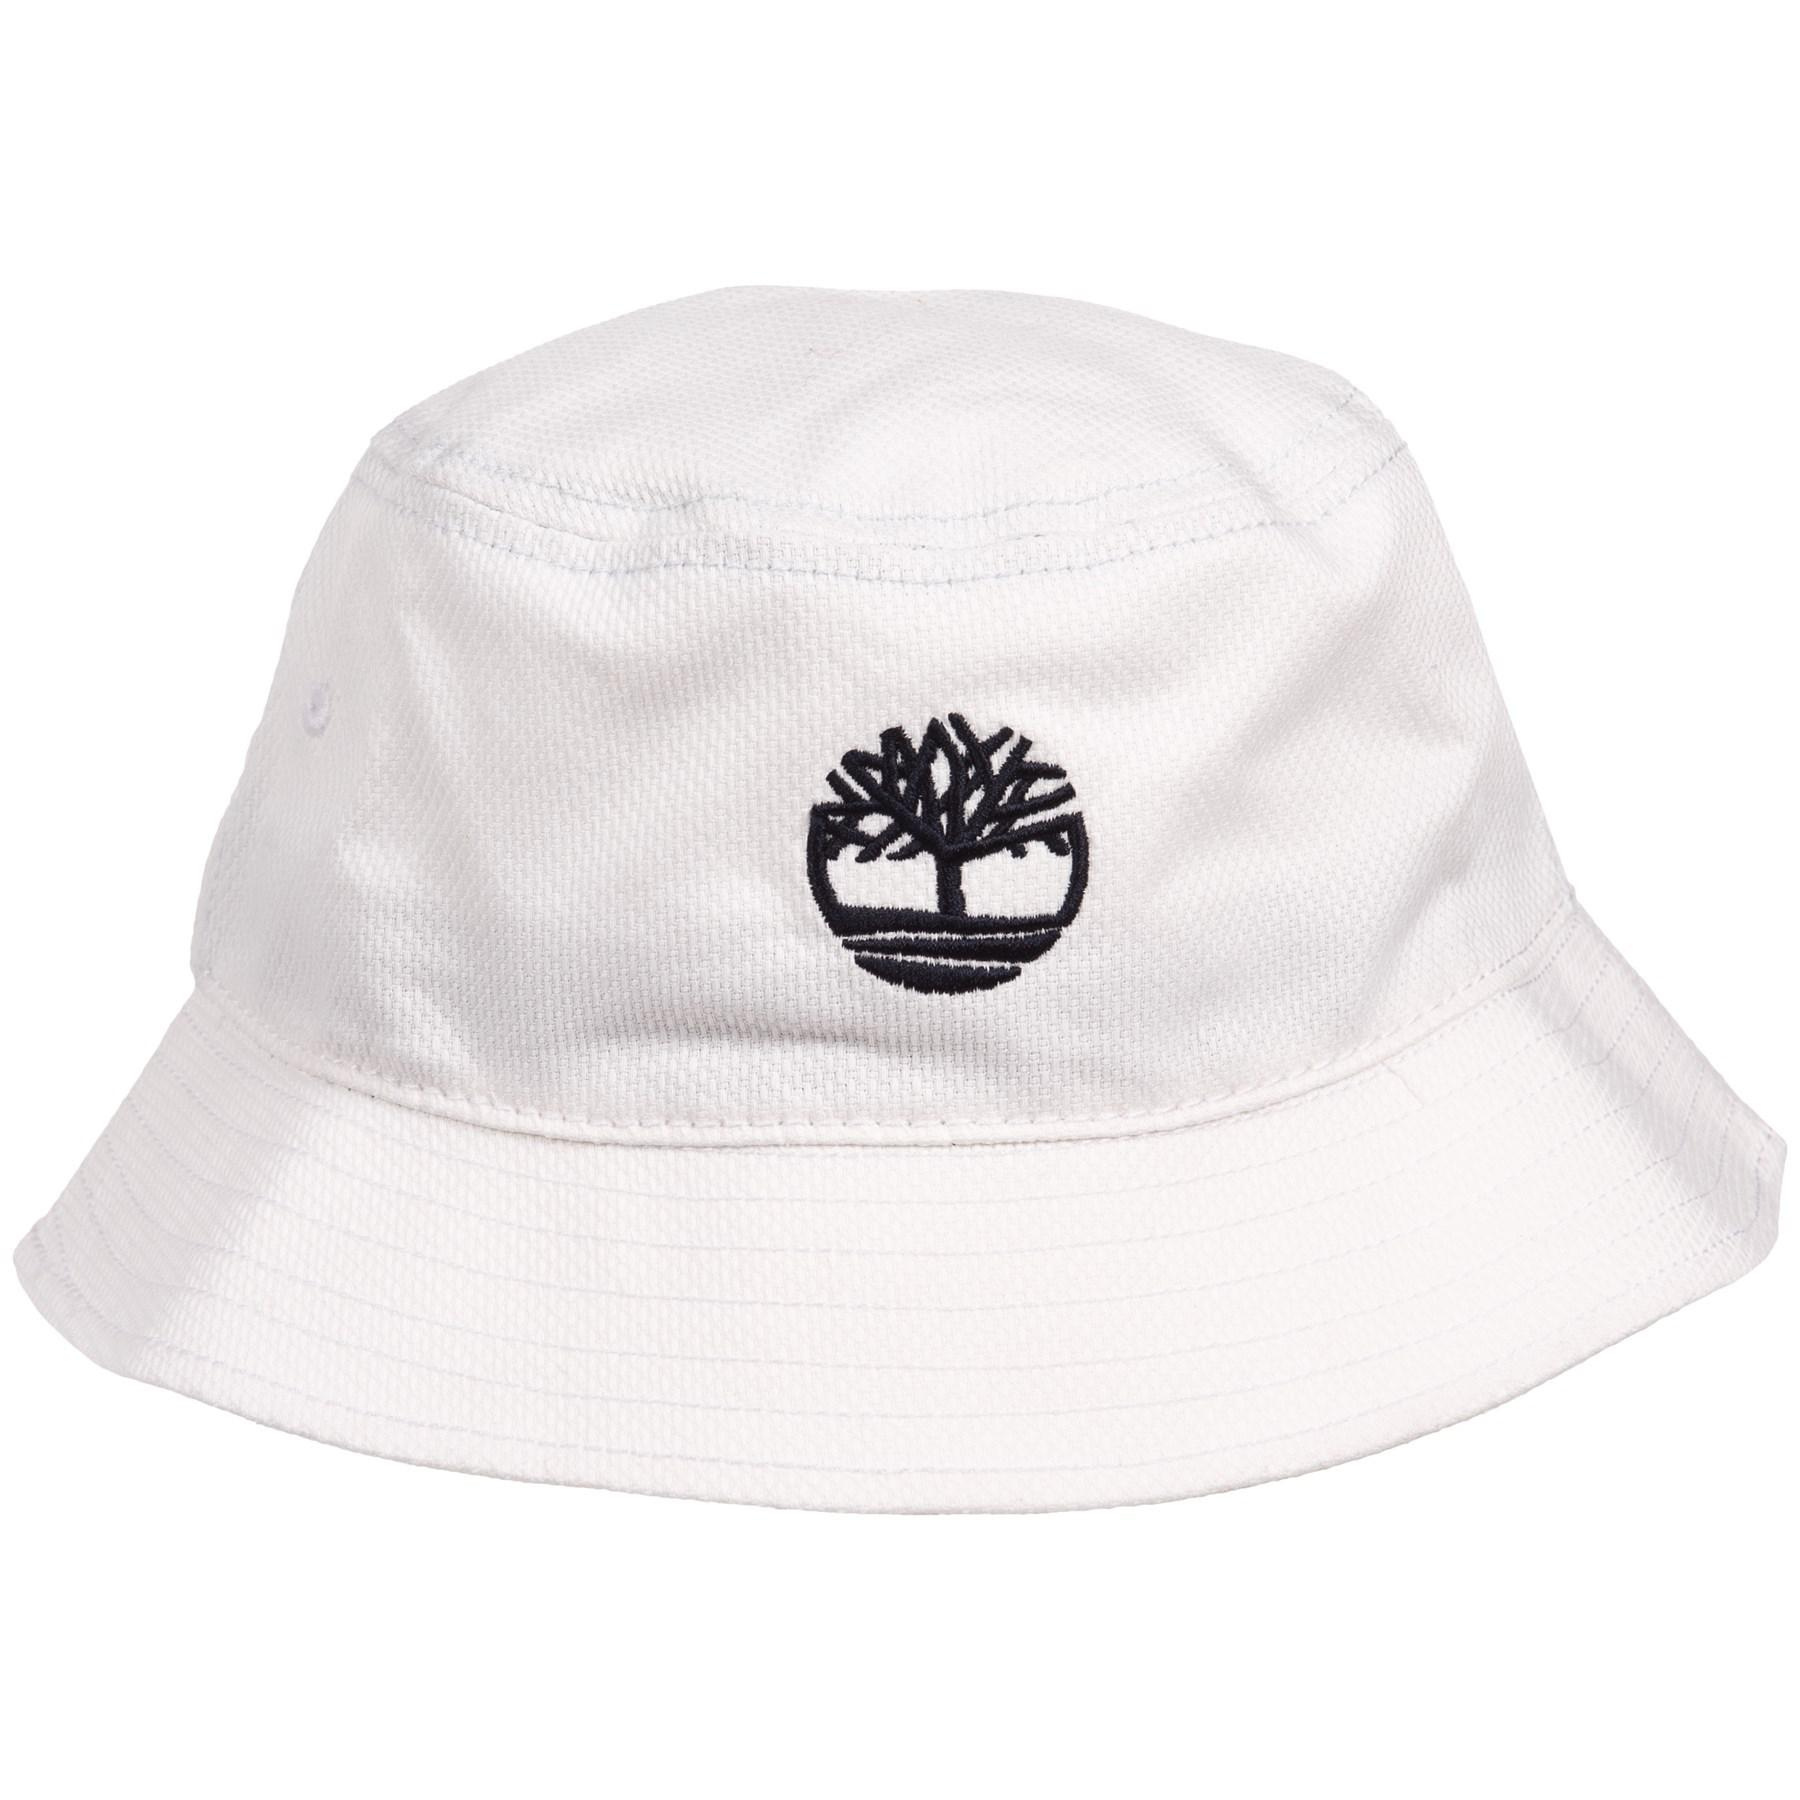 64304991e80 Lyst - Timberland Bucket Hat With Tree Logo (for Men) in White for Men